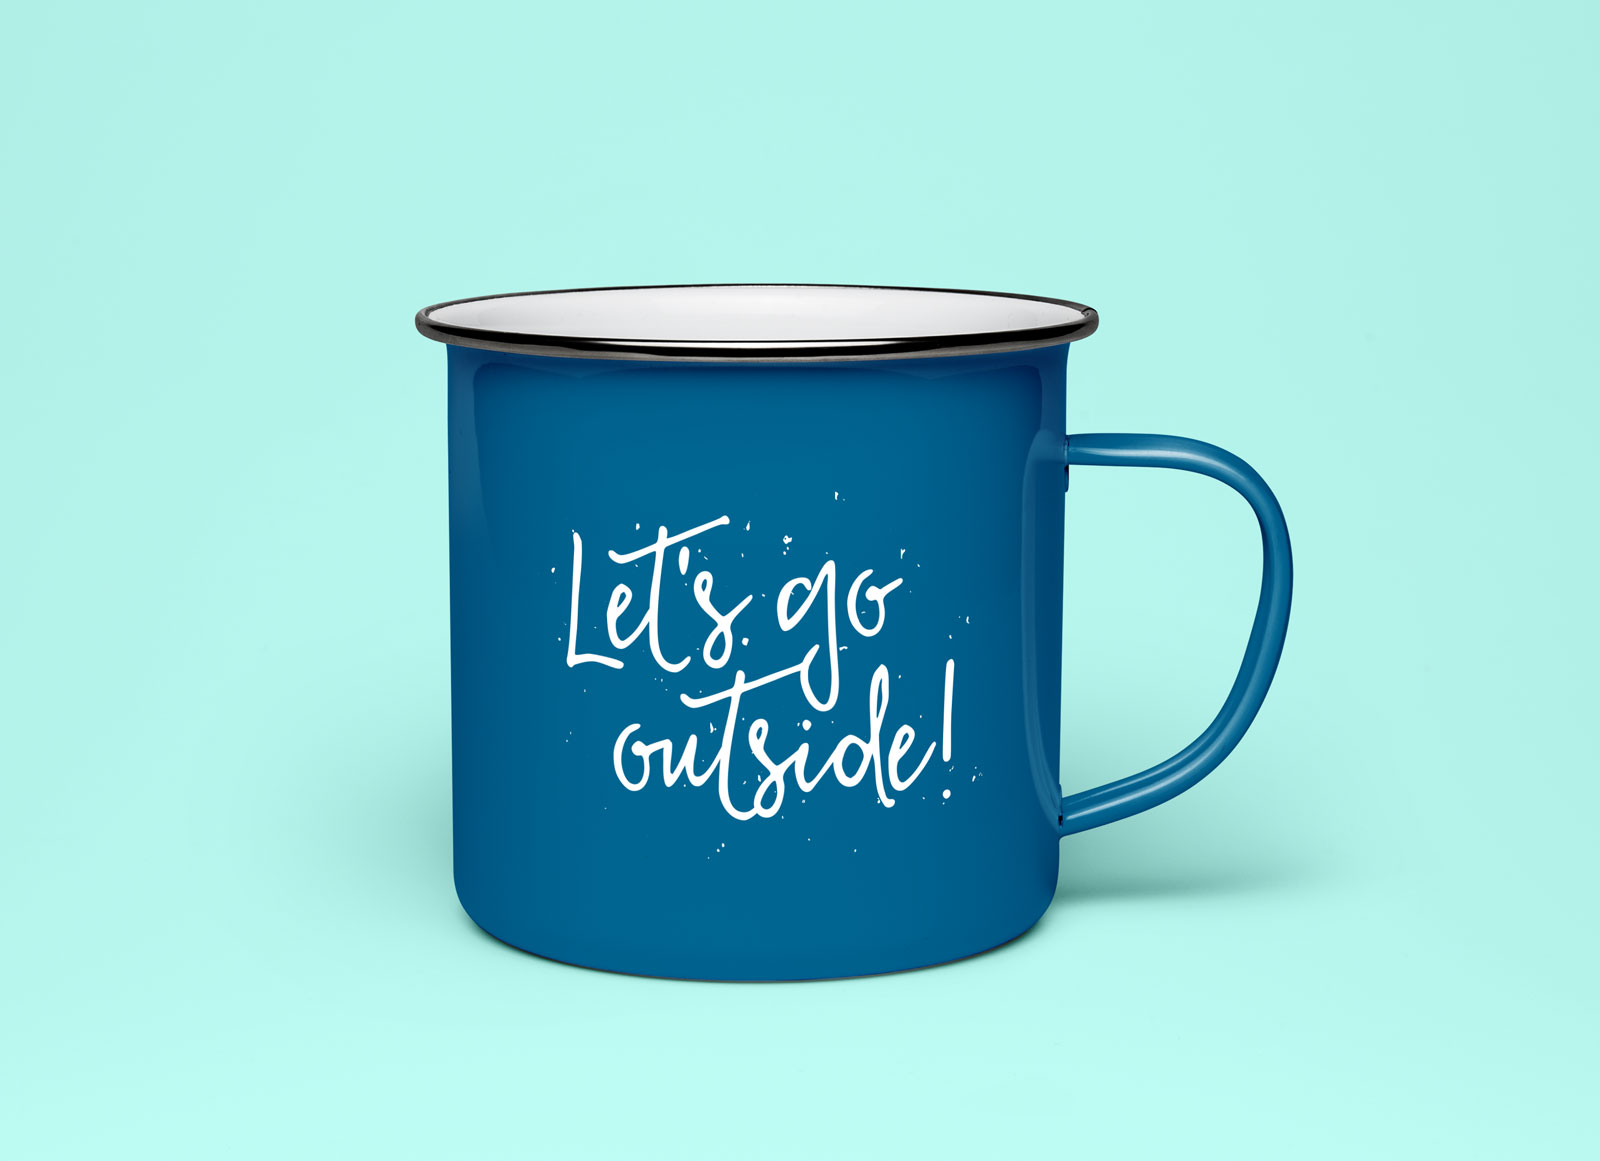 Free-Enameled-Coffee-Tea-Cup-Mockup-PSD-File